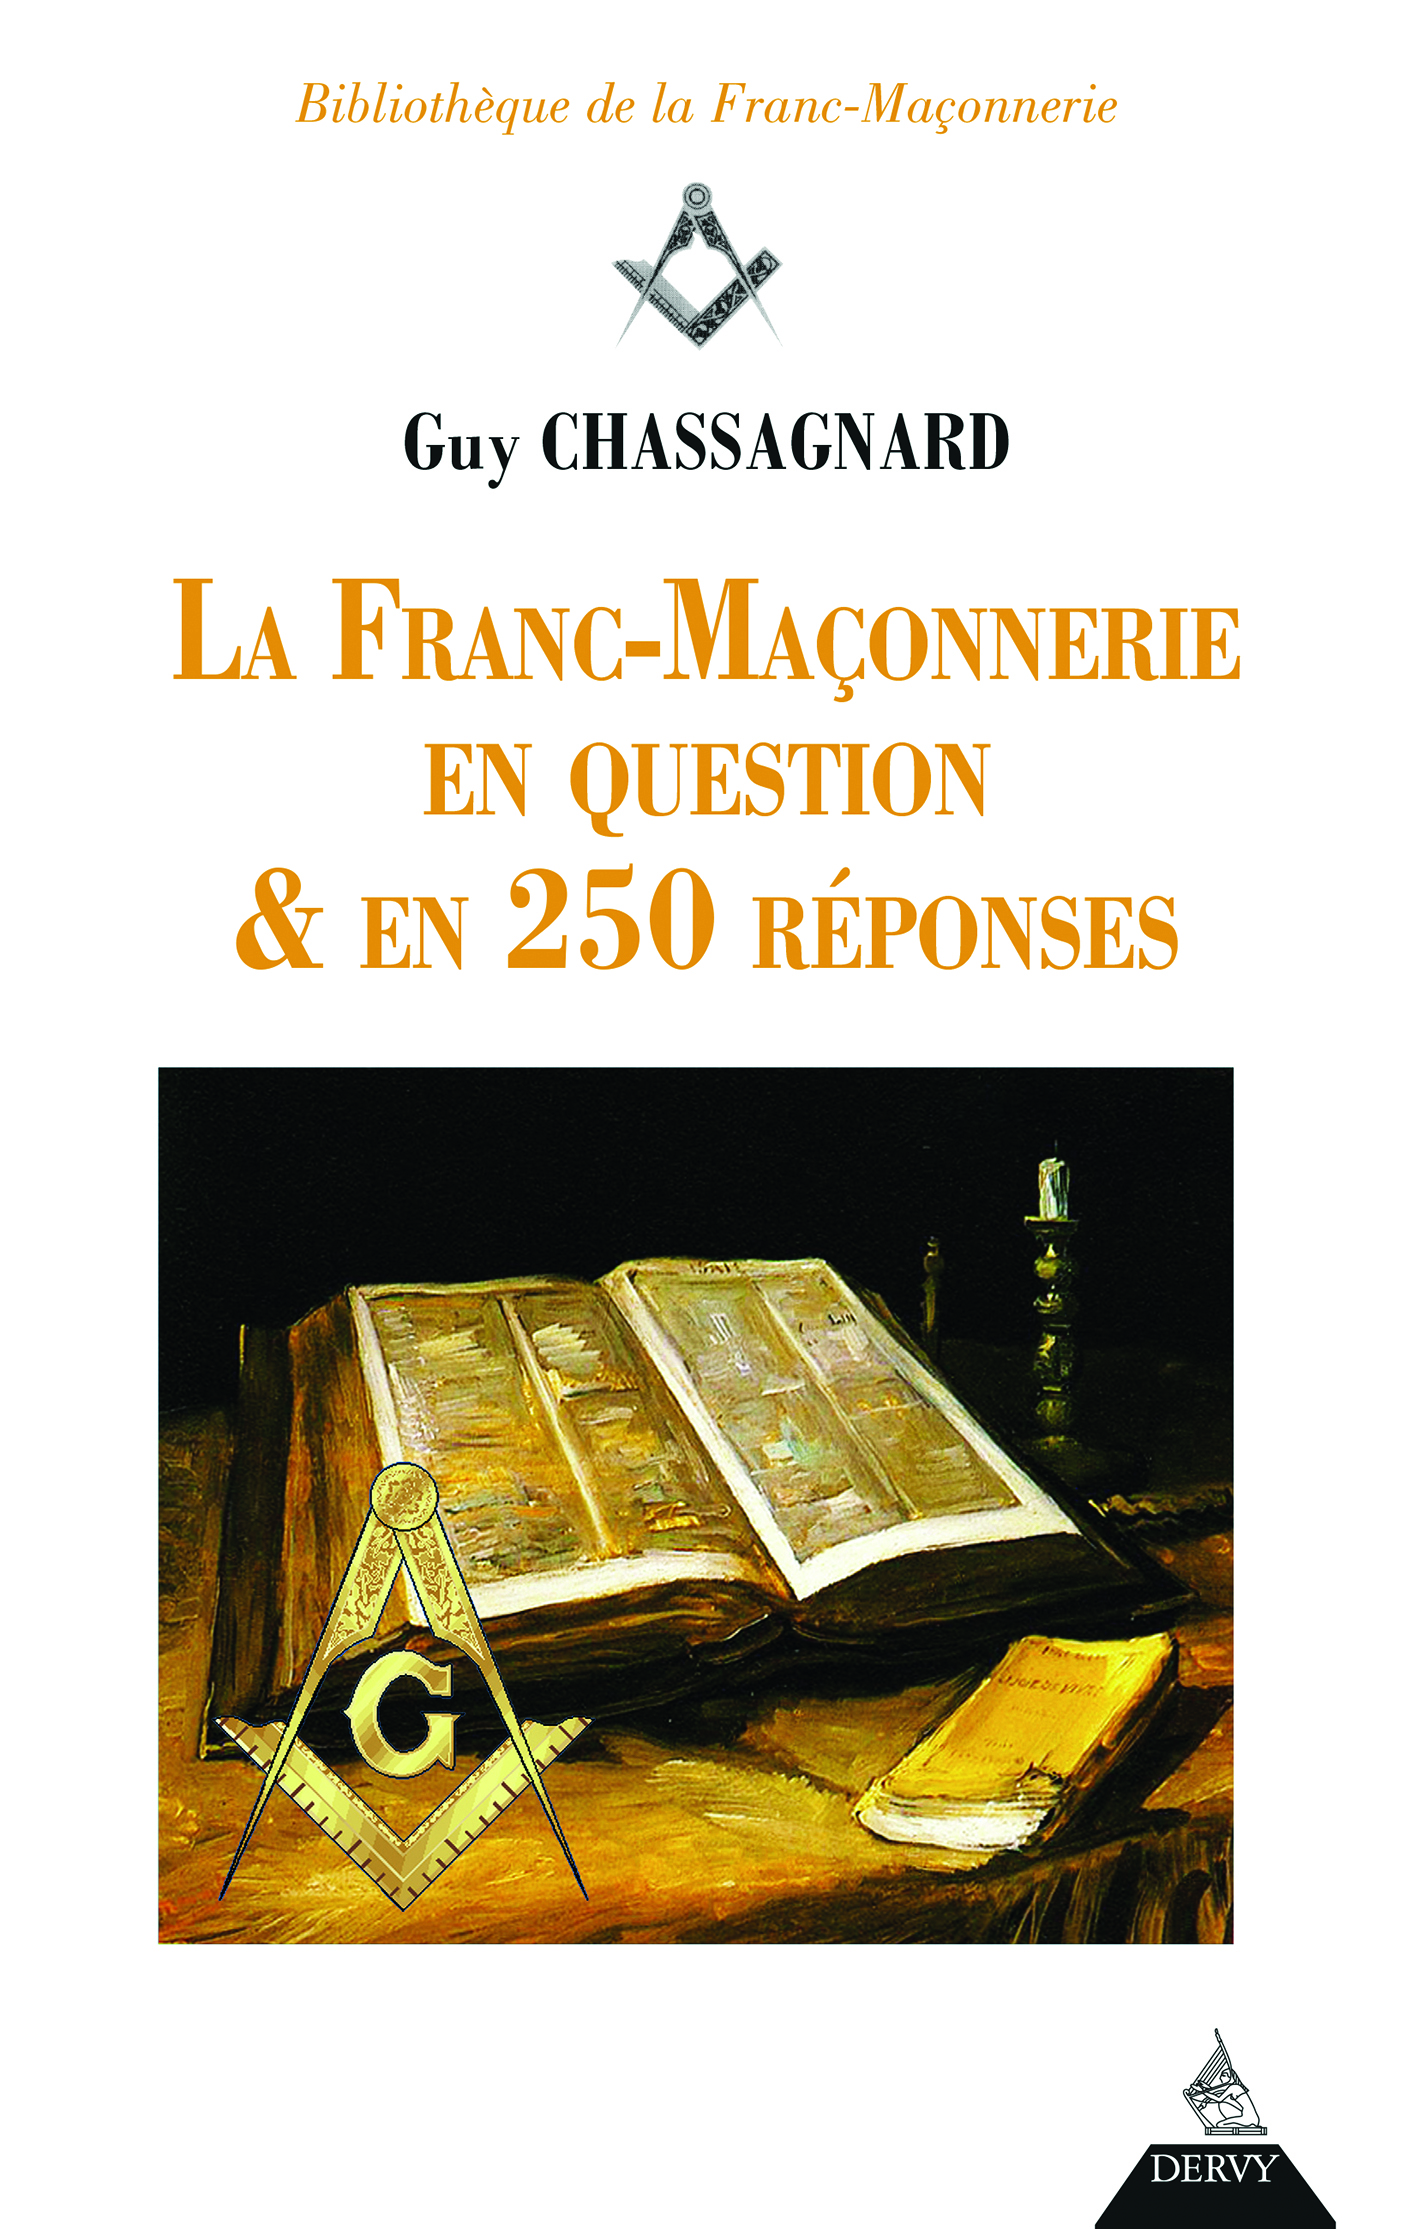 LA FRANC-MACONNERIE EN QUESTION & EN 250 REPONSES